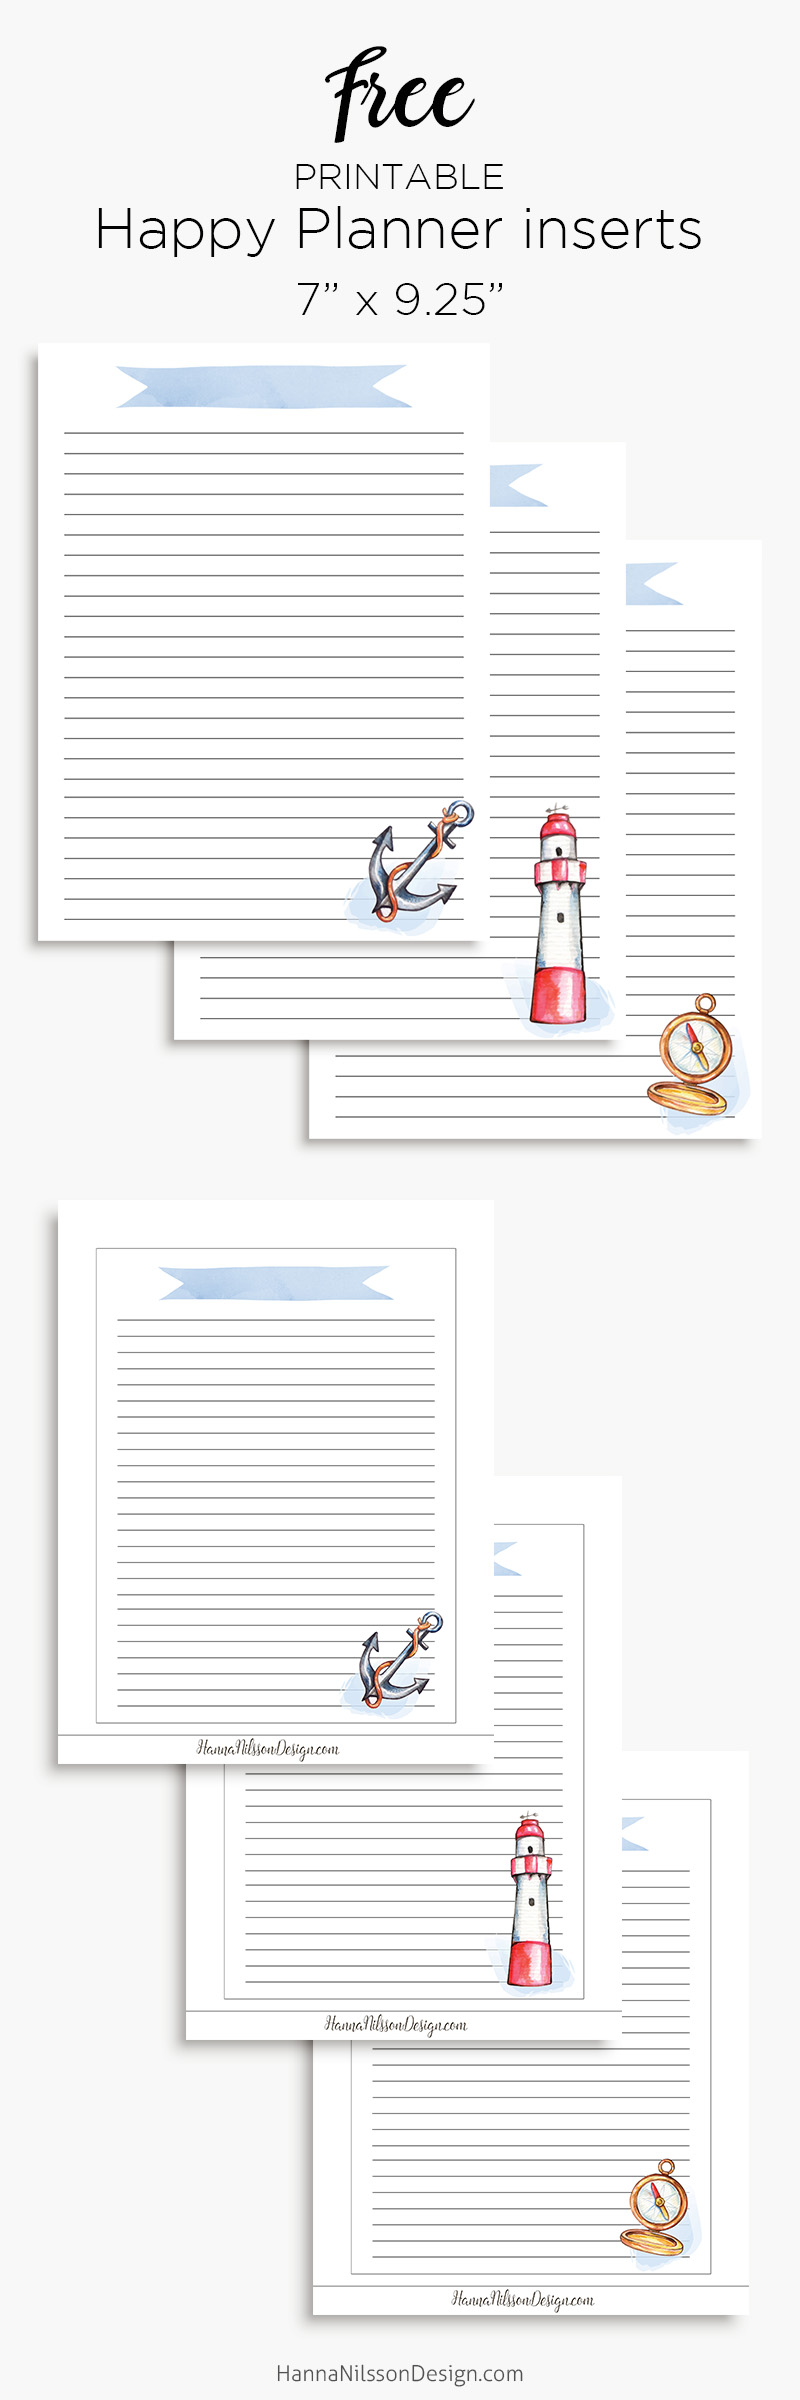 photograph regarding Free A5 Planner Printables named Nautical planner incorporate A5 Joyful planner printable lists